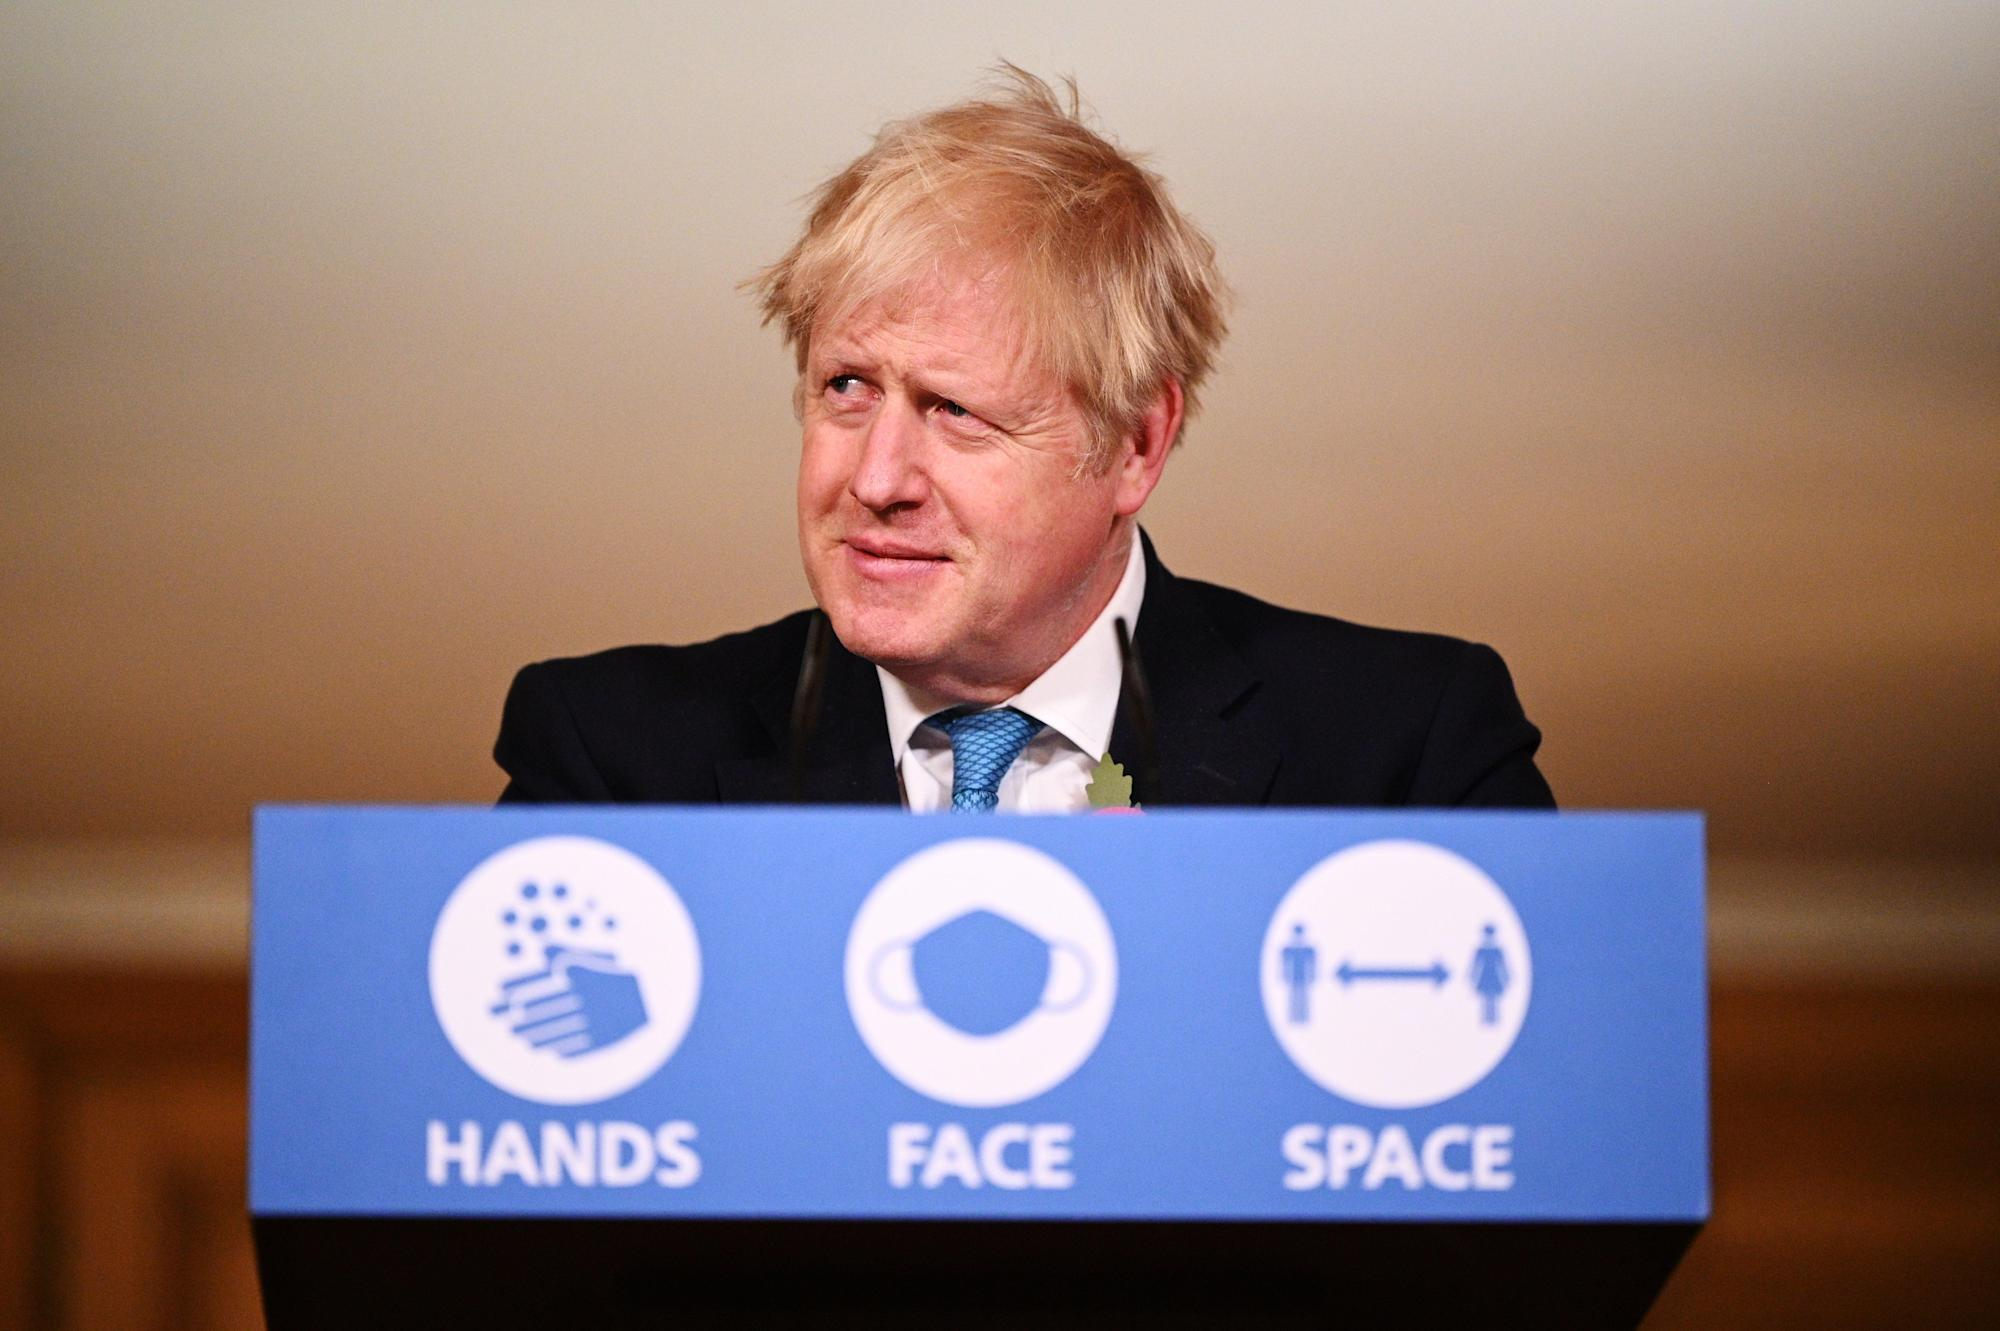 Boris Johnson congratulates Joe Biden on victory and says he 'looks forward to working closely together'